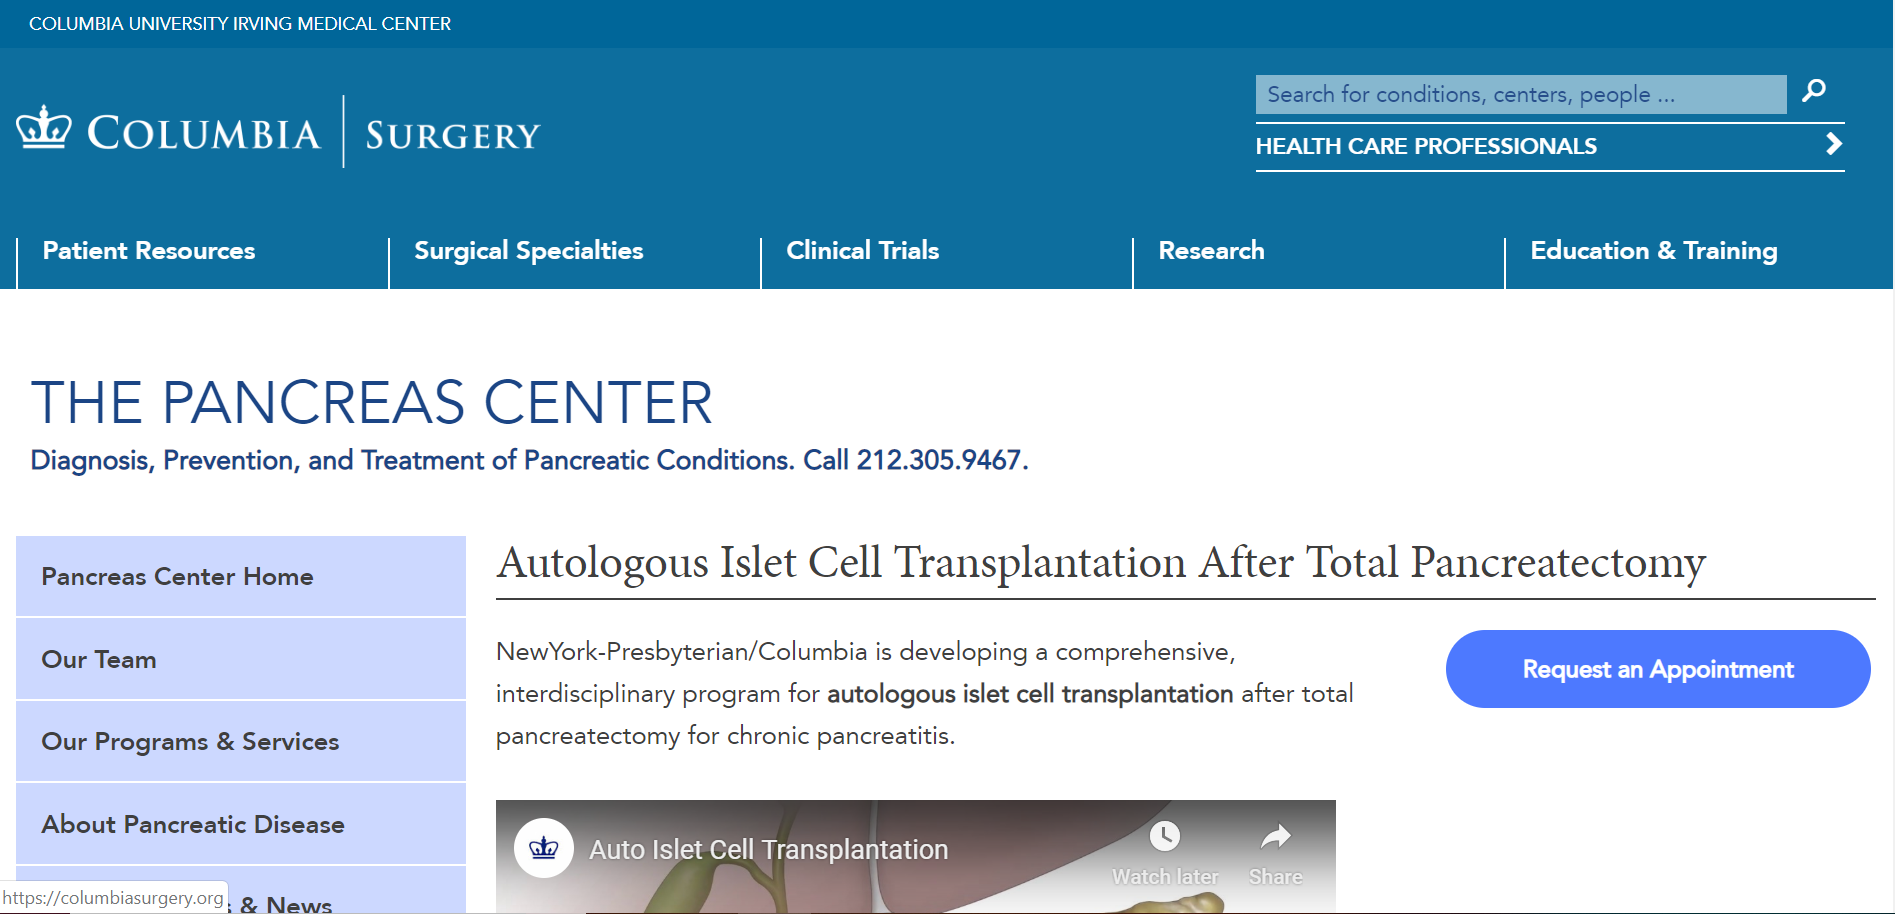 Columbia University Surgery, The Pancreas Center, Diagnosis, Treatment, and Prevention of Pancreatic Conditions, AUtologous Islet Cell Transplantation after total Pancreatectomy